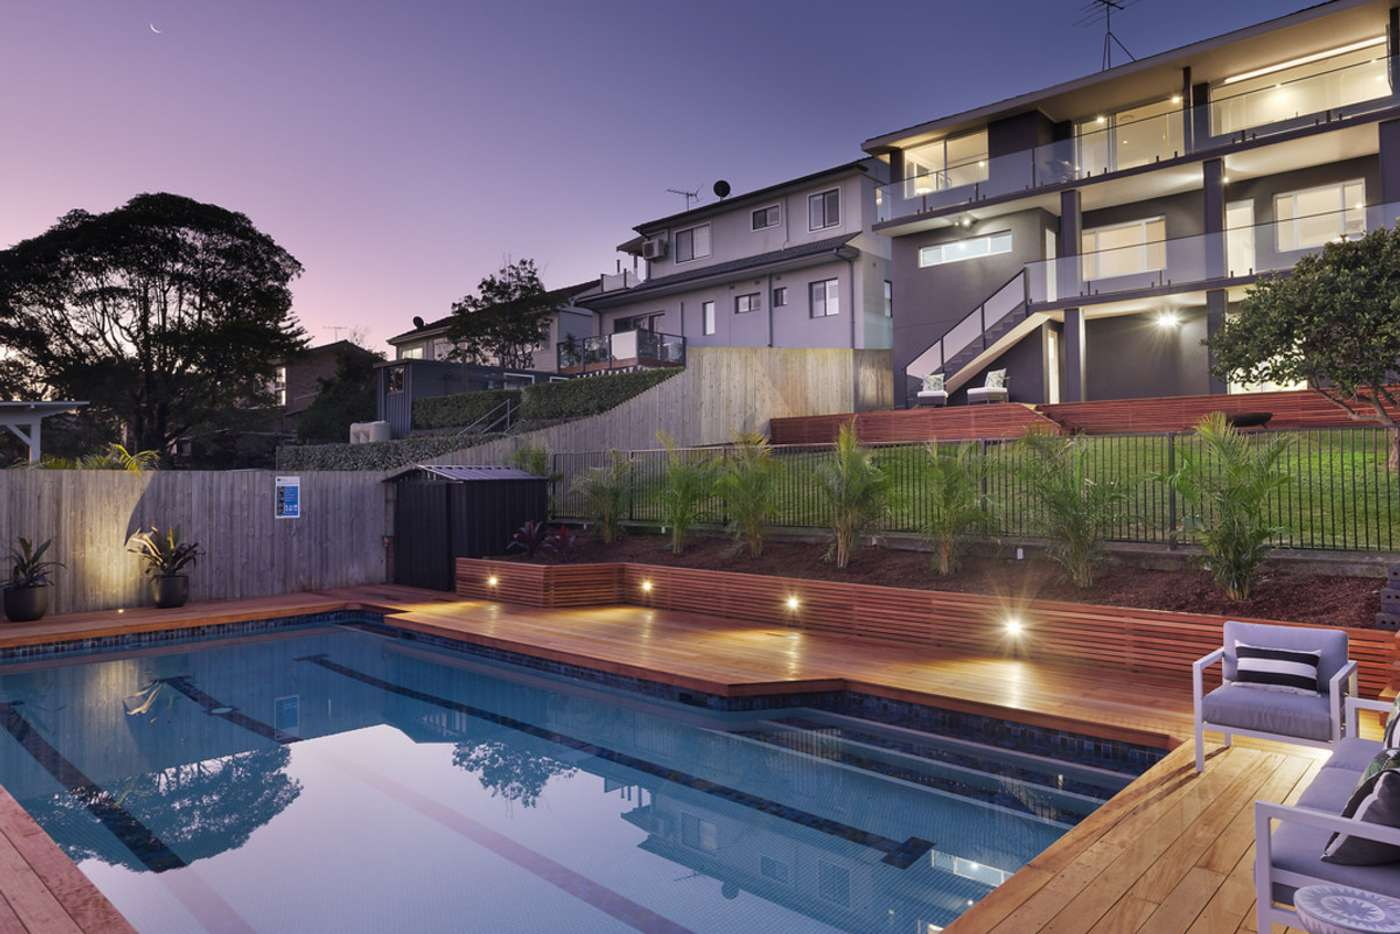 Main view of Homely house listing, 21 Arnott Crescent, Warriewood NSW 2102